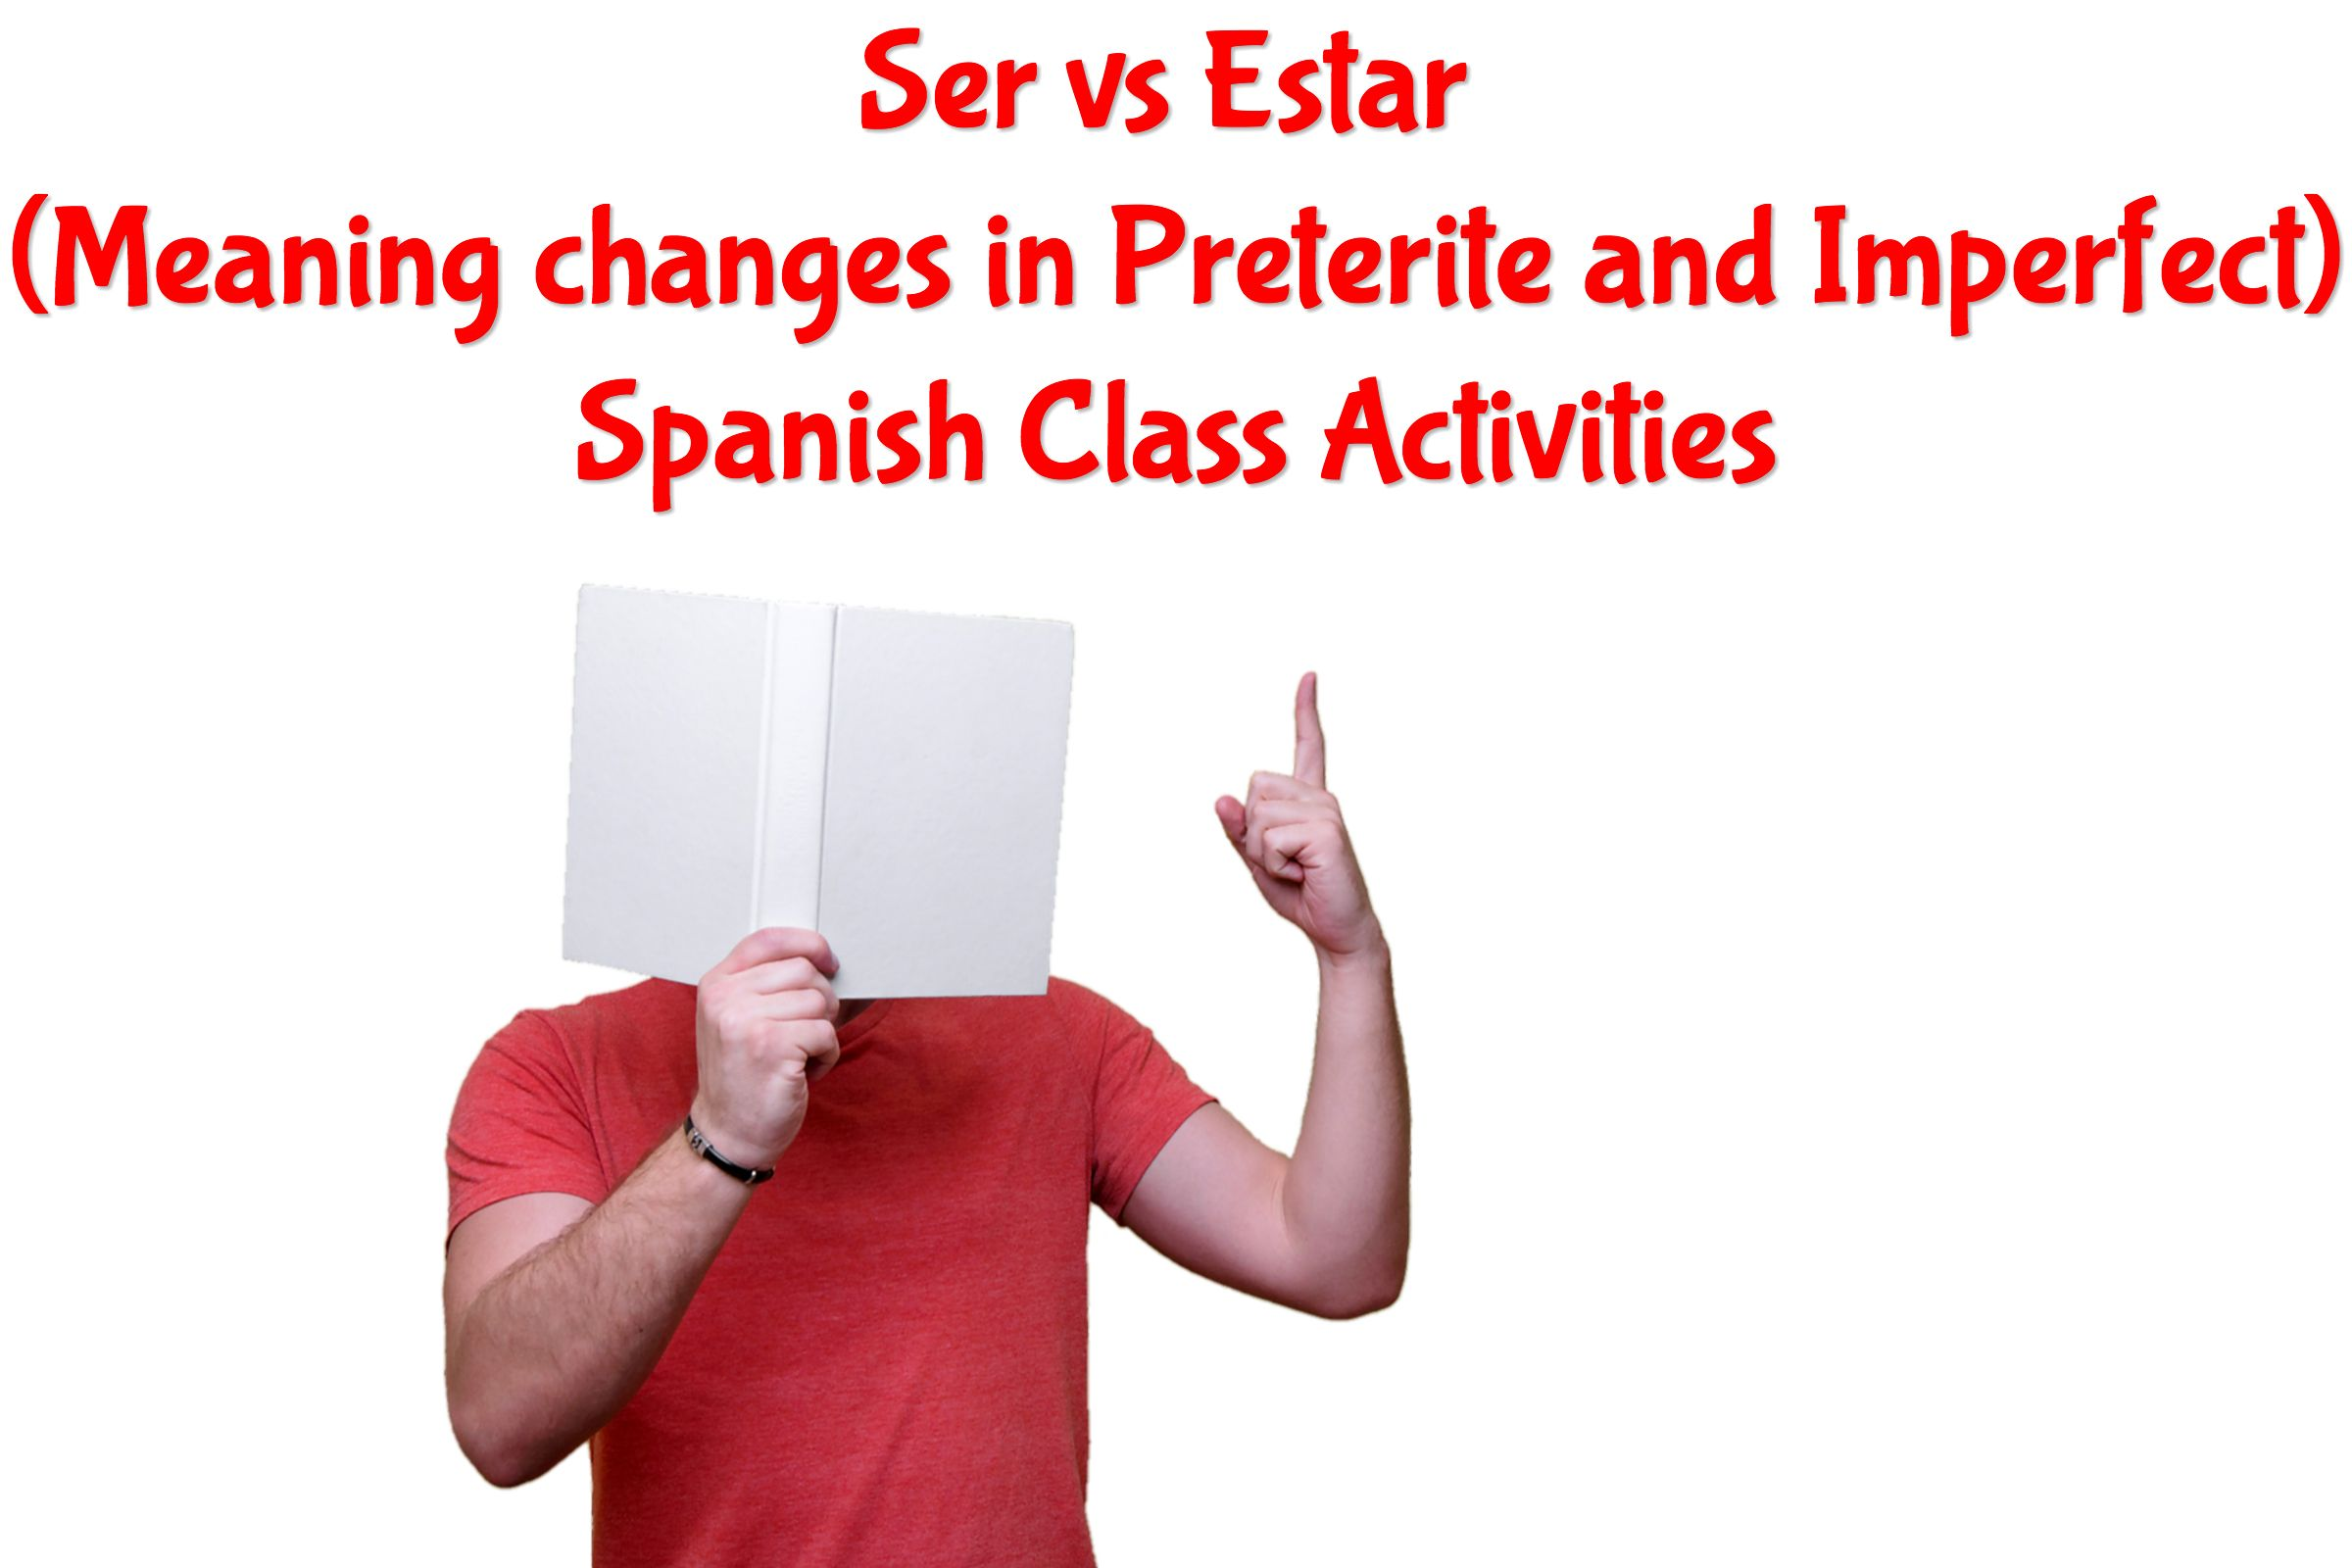 Ser Vs Estar Meaning Changes In Preterite And Imperfect